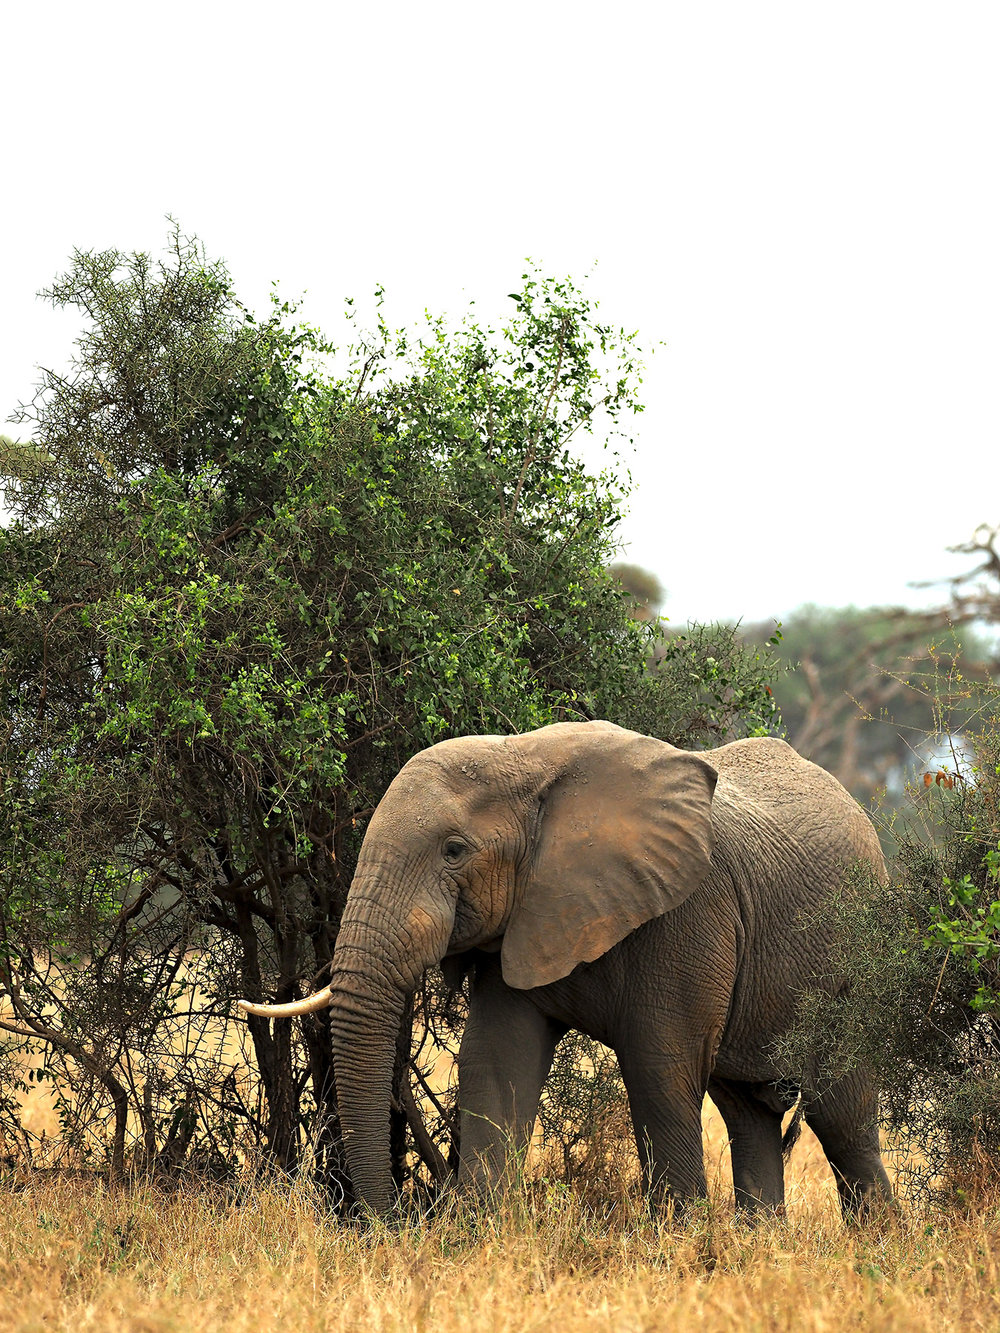 Ranjan_Ramchandani_Elephants of Amboseli_The single tusked one.jpg